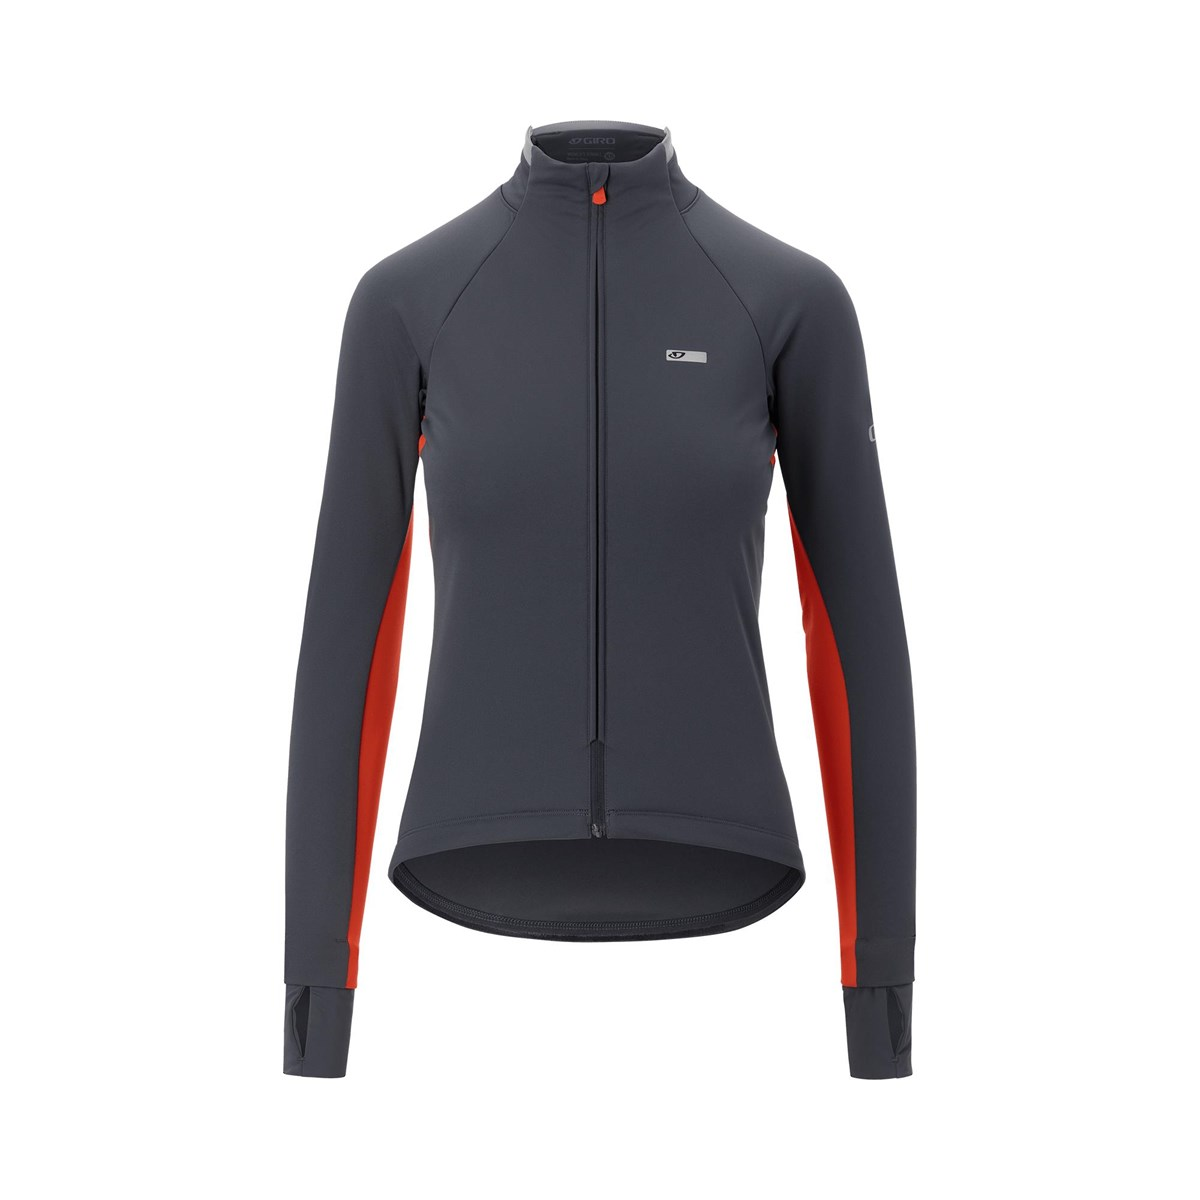 Women's Chrono Pro Alpha Jacket